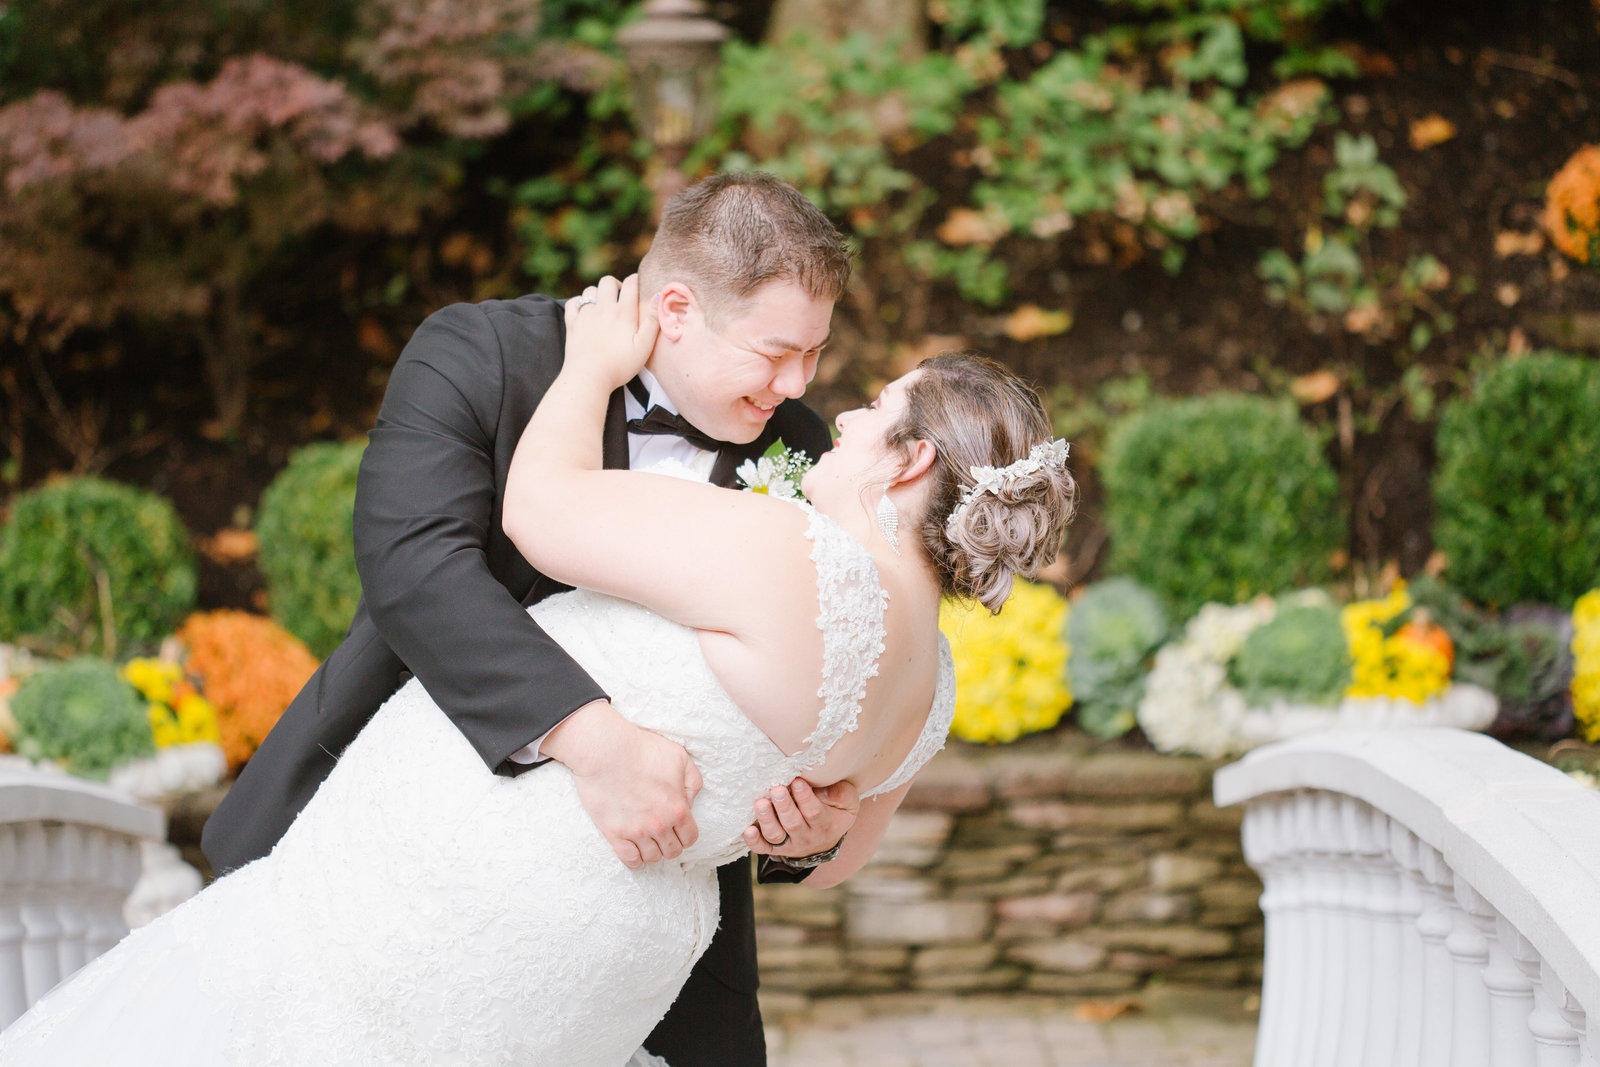 Naninas-in-the-park-North-Jersey-wedding-photographer-JDMP-144